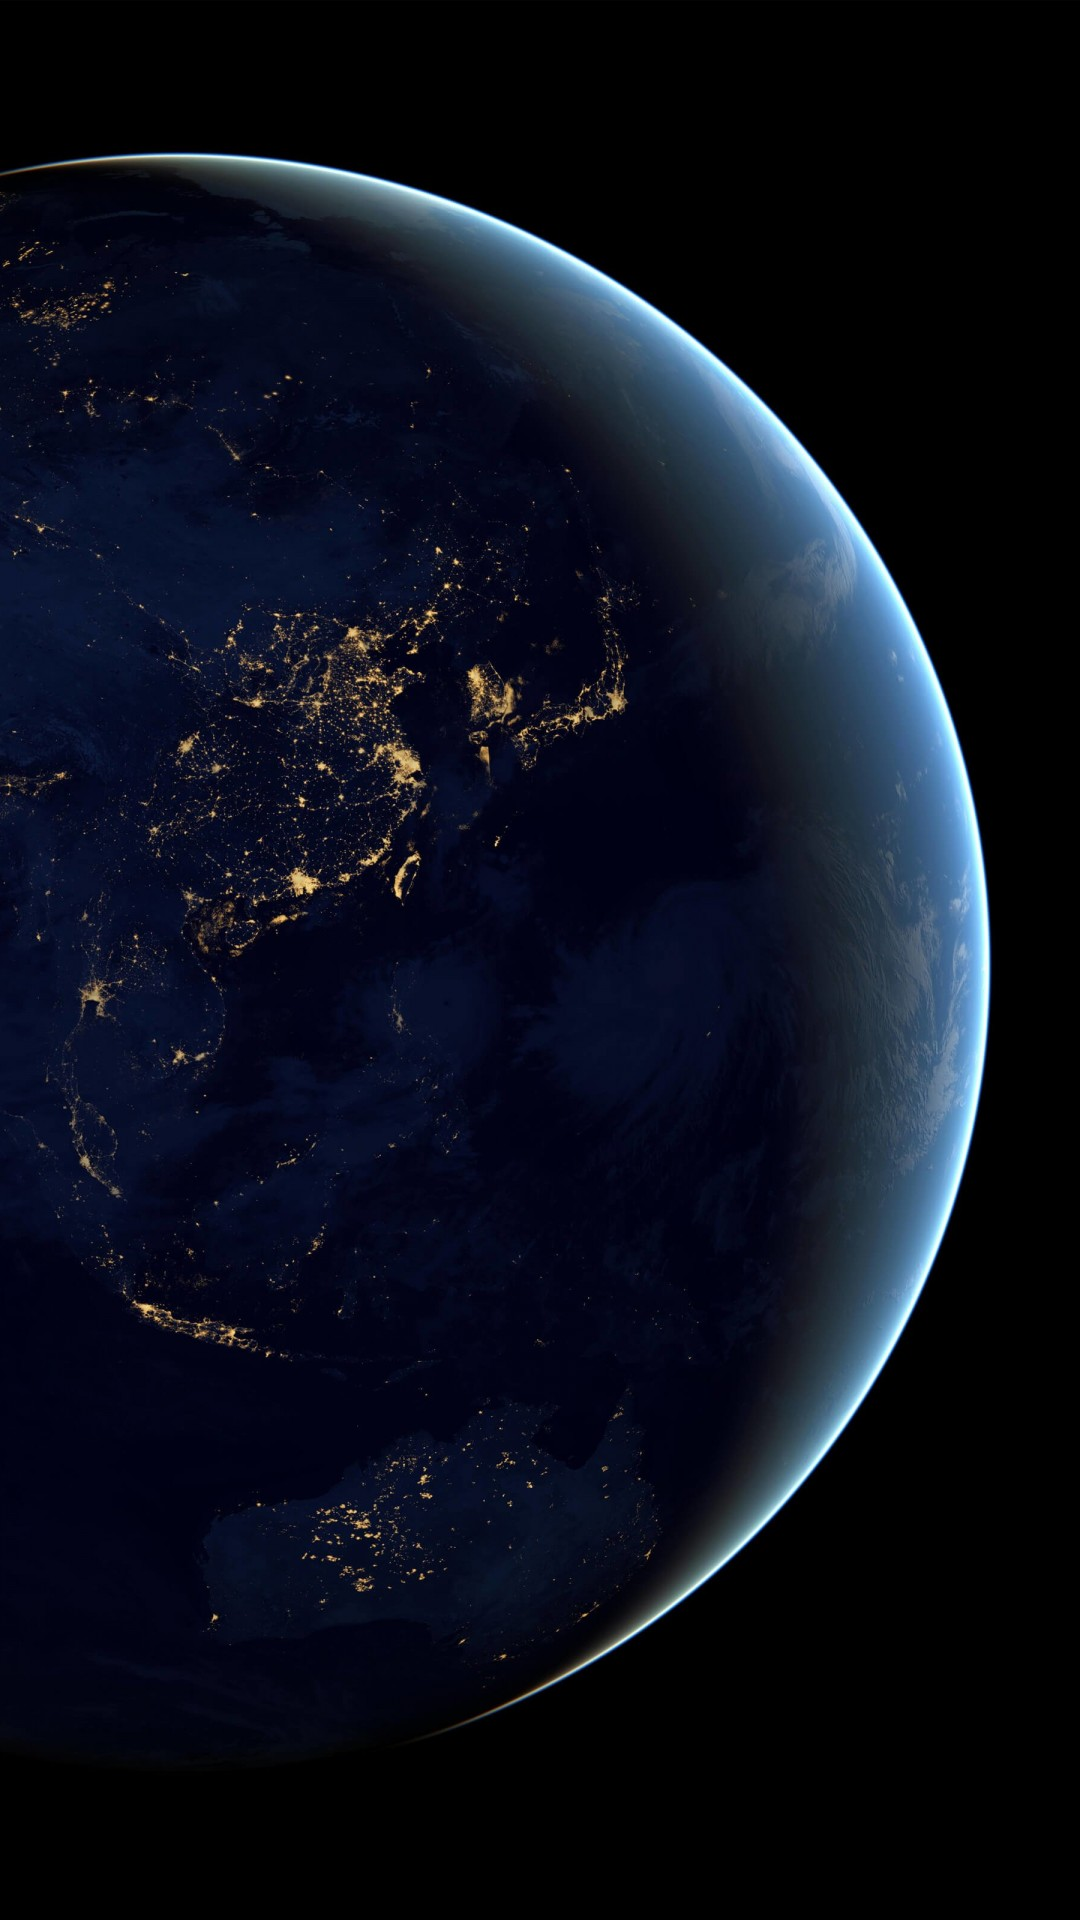 Earth At Night Seen From Space Wallpaper for Google Nexus 5